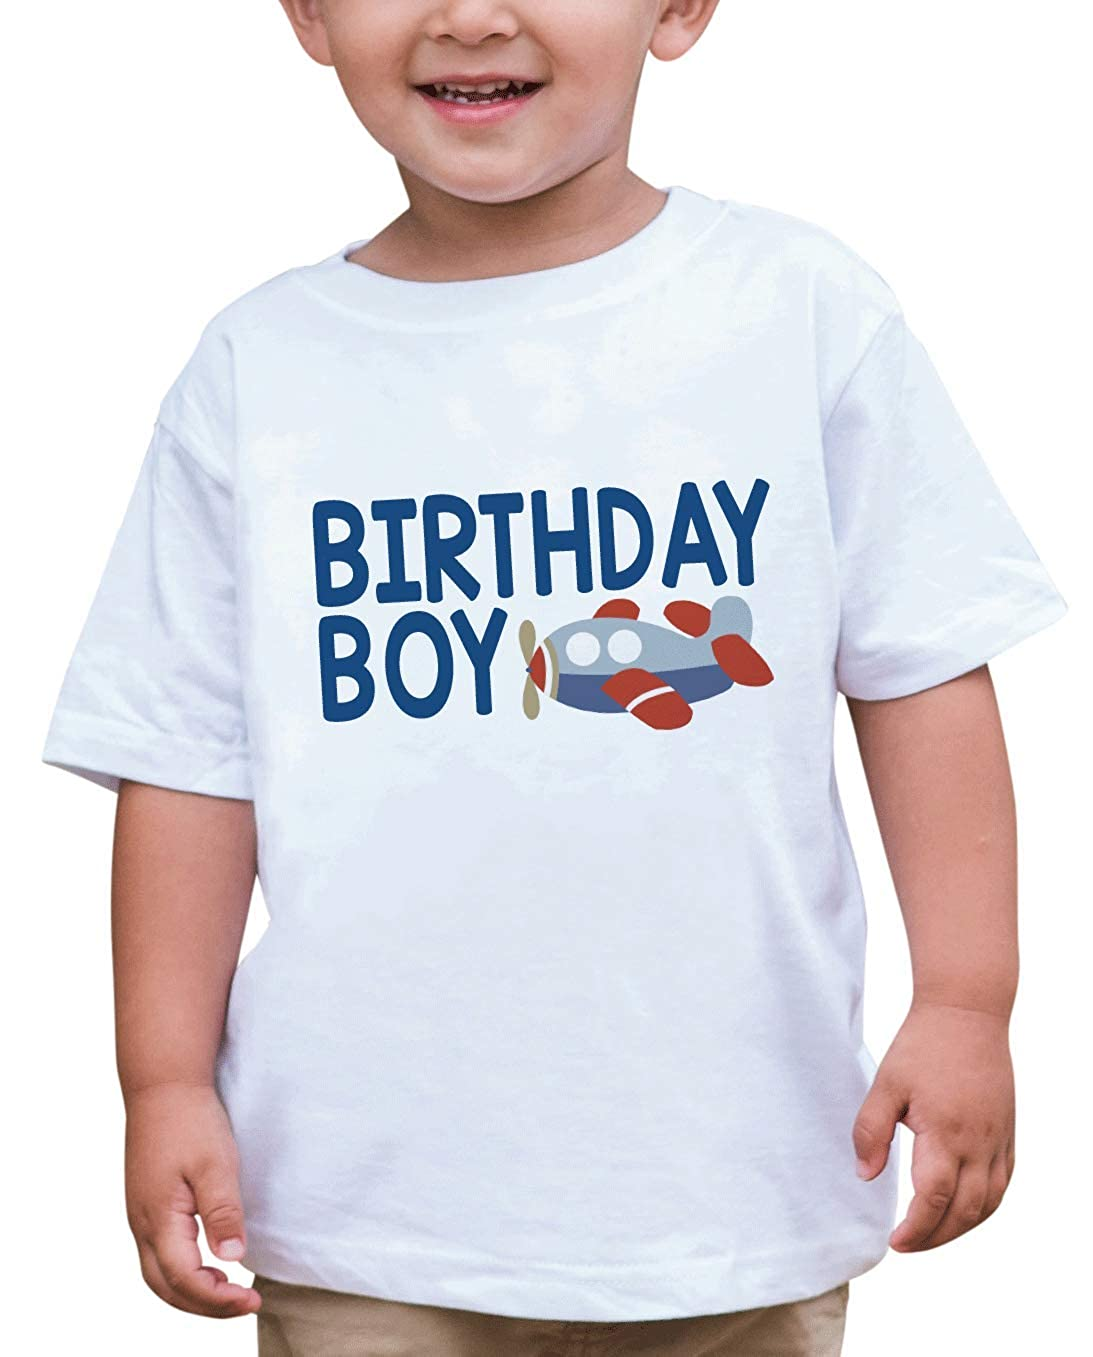 7 ate 9 Apparel Boys Birthday Boy Airplane T-Shirt